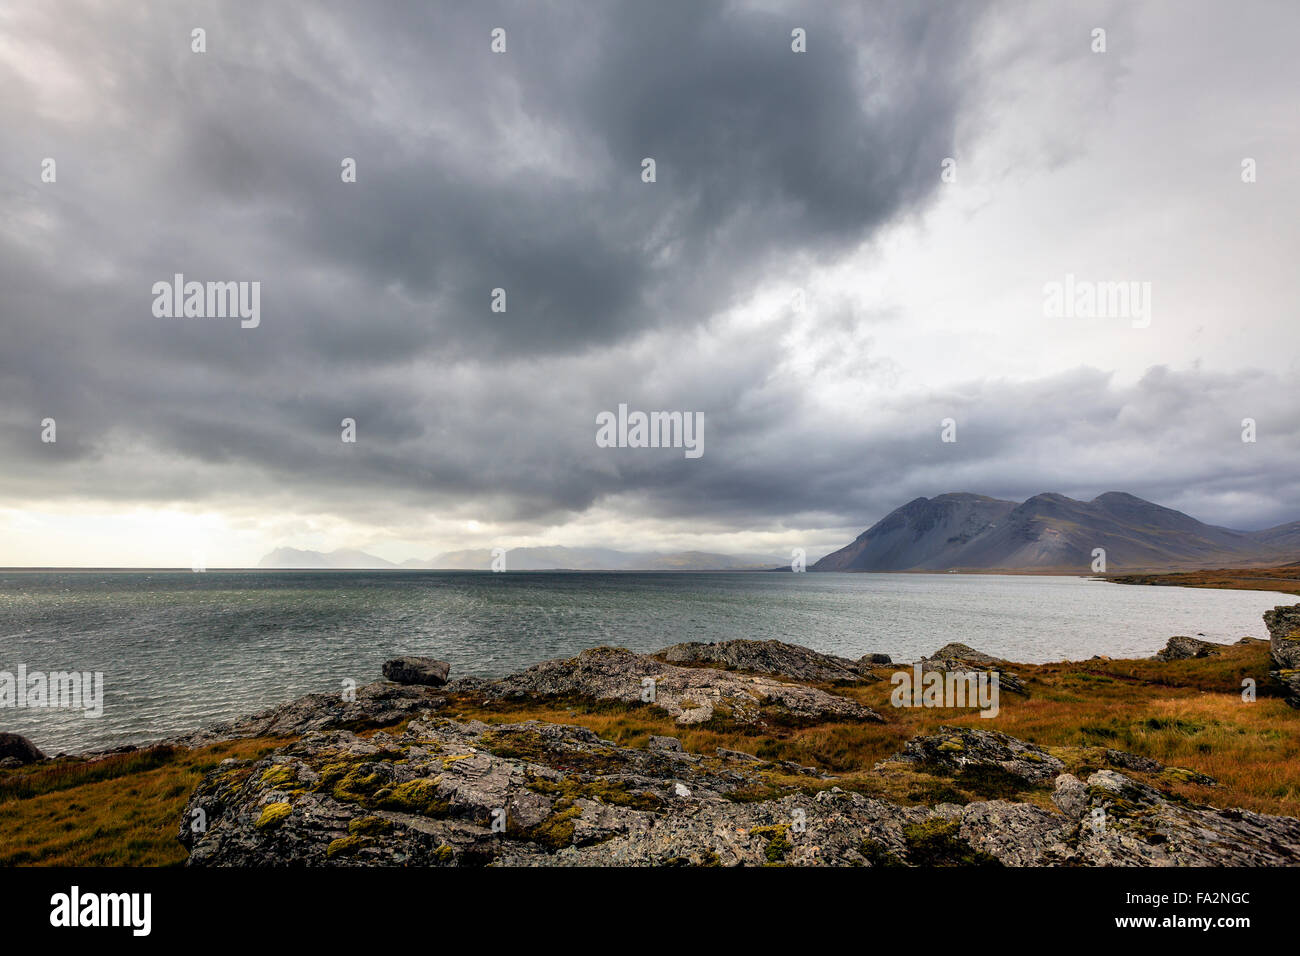 Scenic view of southern coast of Iceland and Northern Atlantic with overcast skies - Stock Image